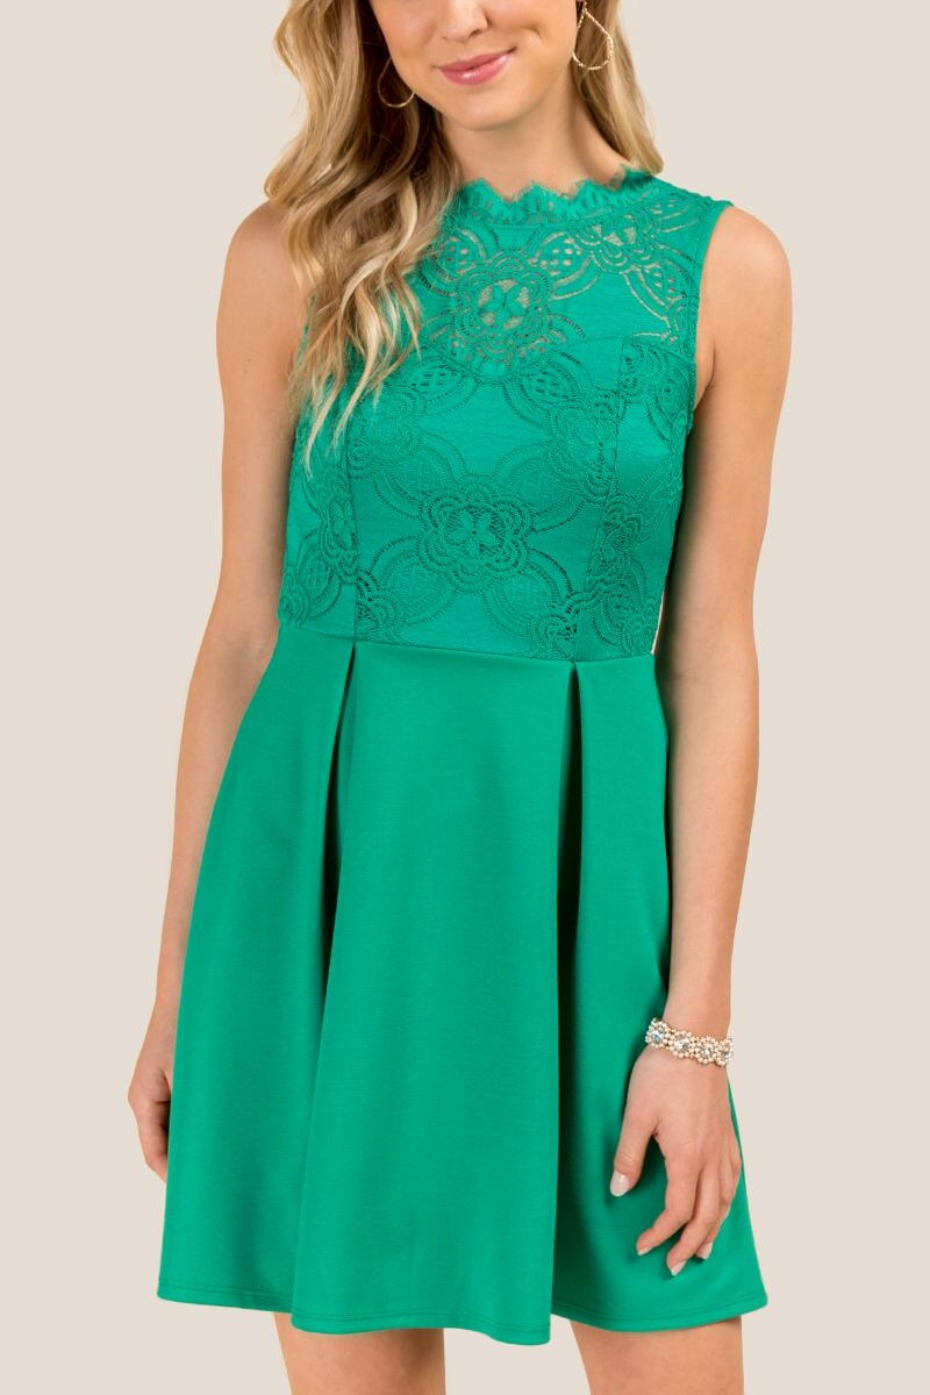 Francesca's Pleated A-line Dress in Jade